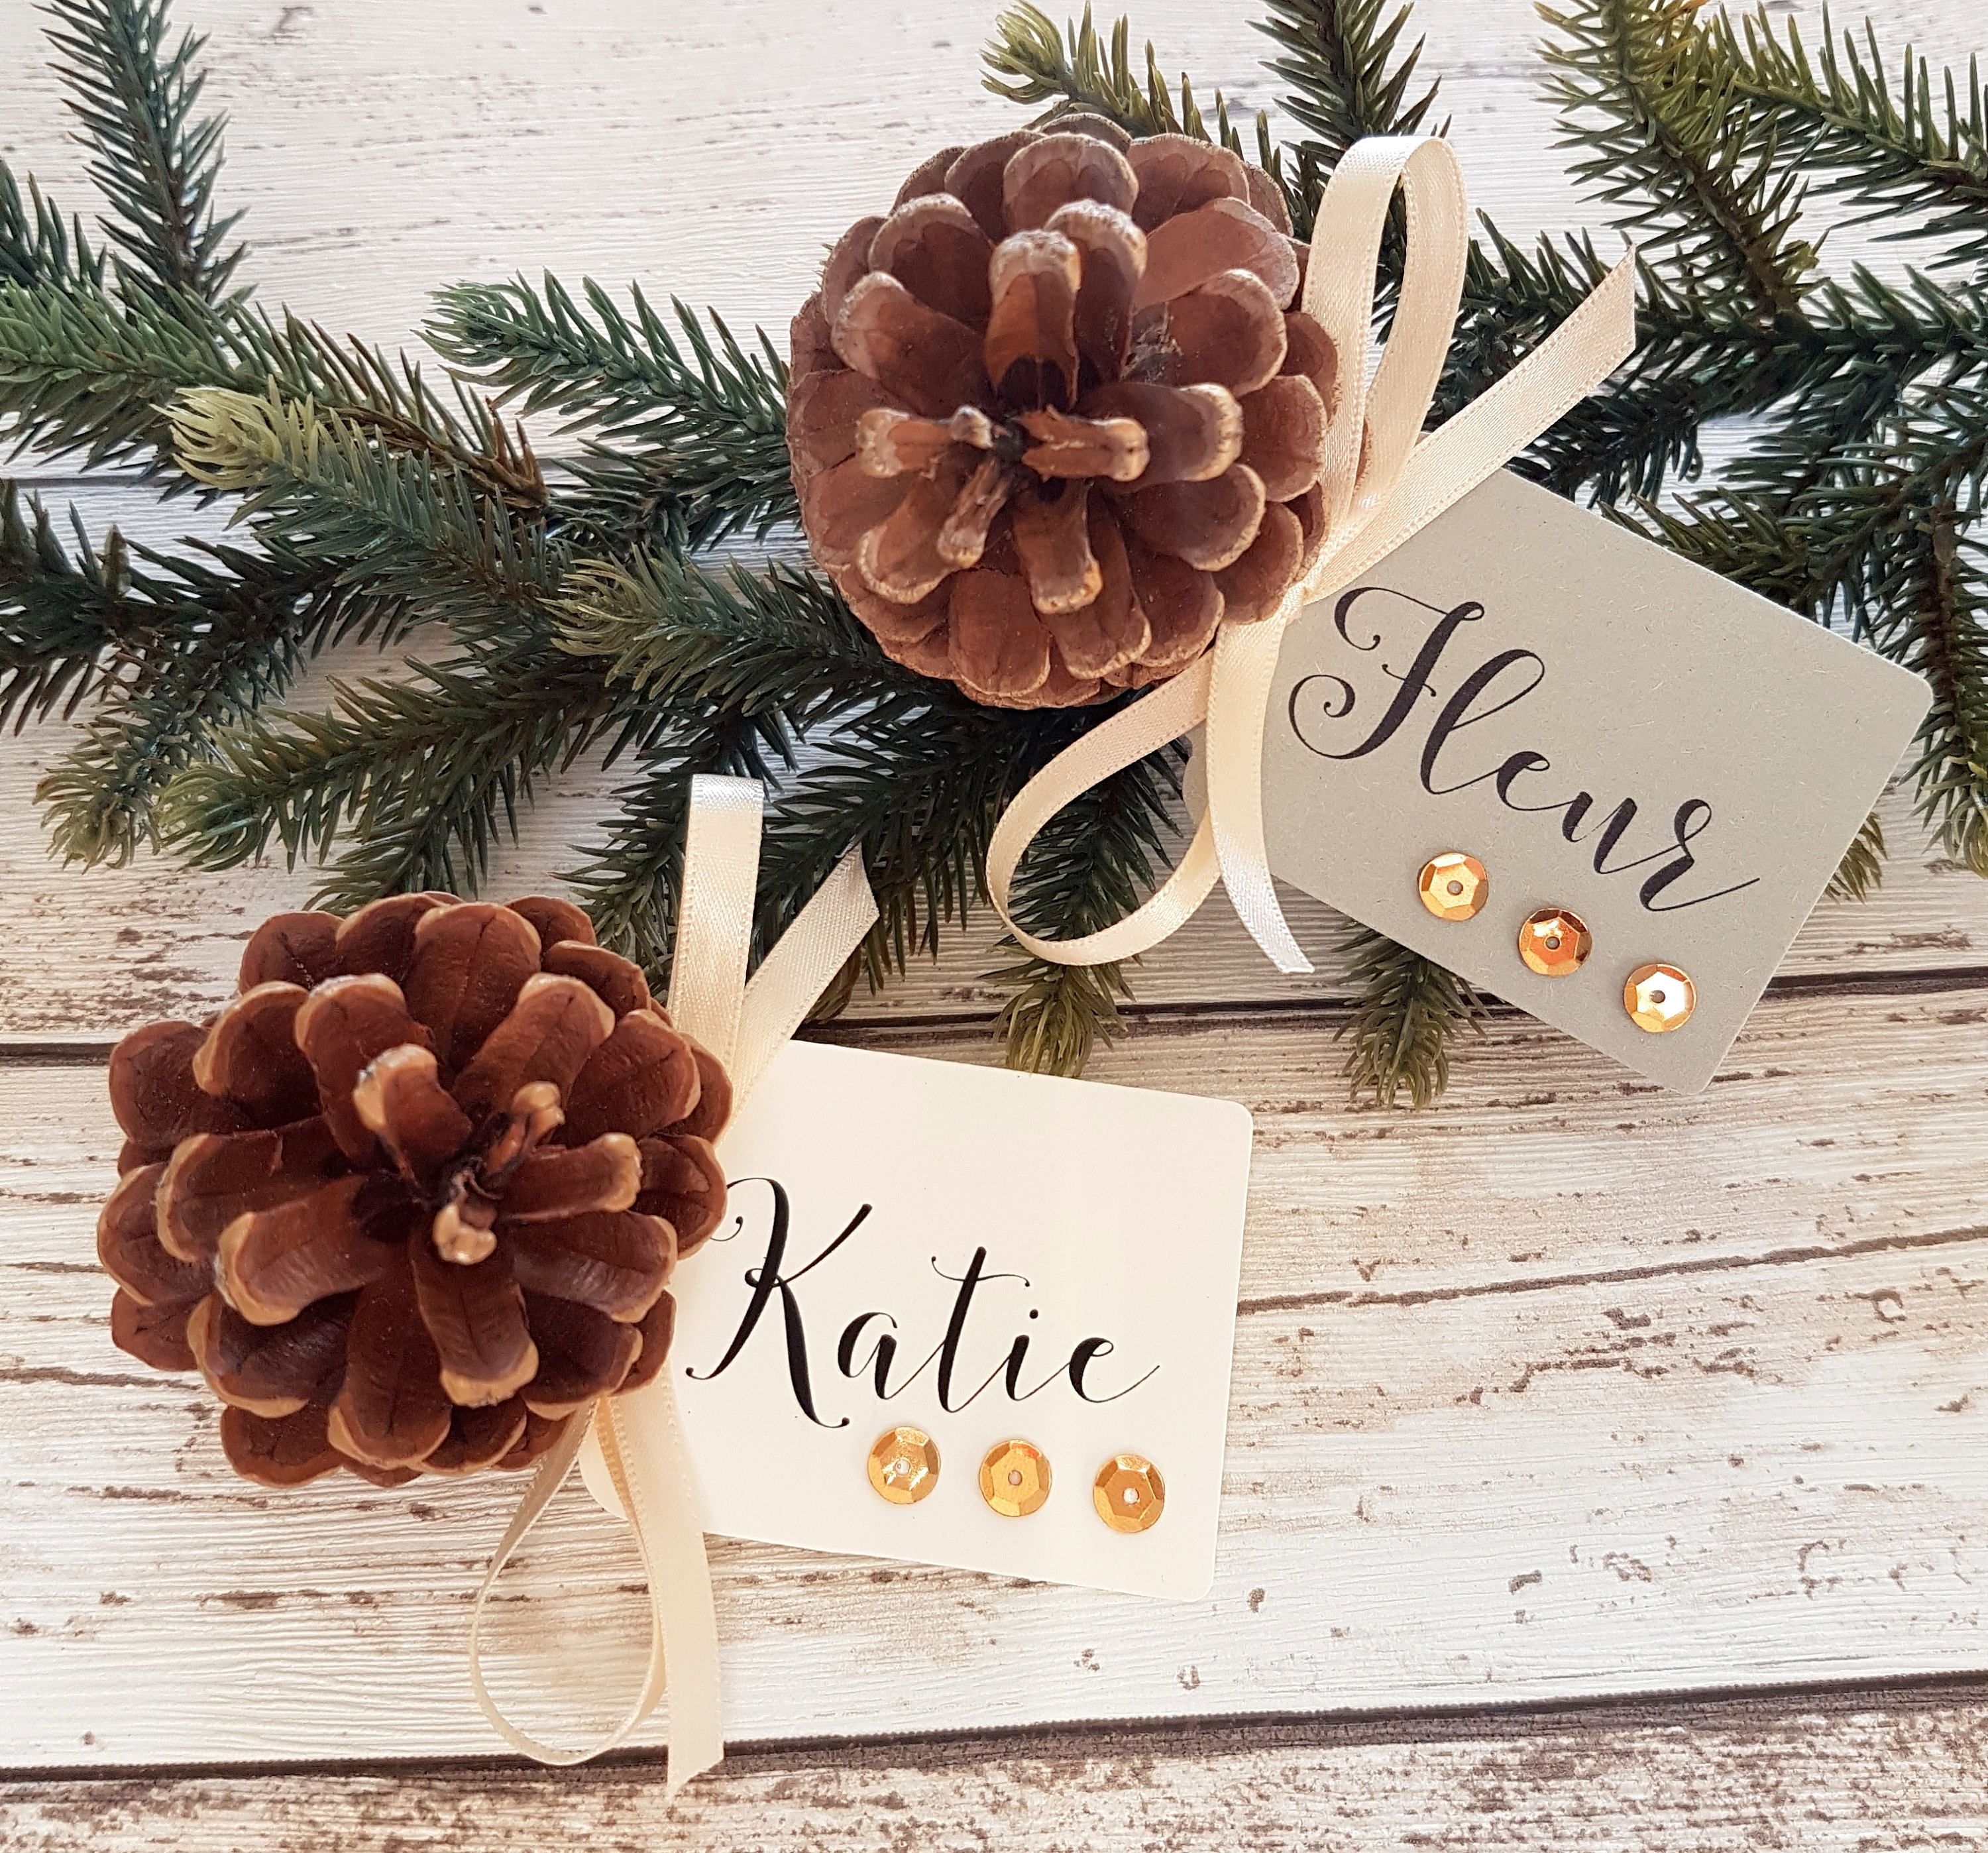 Christmas Place Card Pine Cone Xmas Name Tags Place Names Grey Or Cream With Metalli Christmas Place Cards Gold Christmas Decorations Christmas Dinner Table